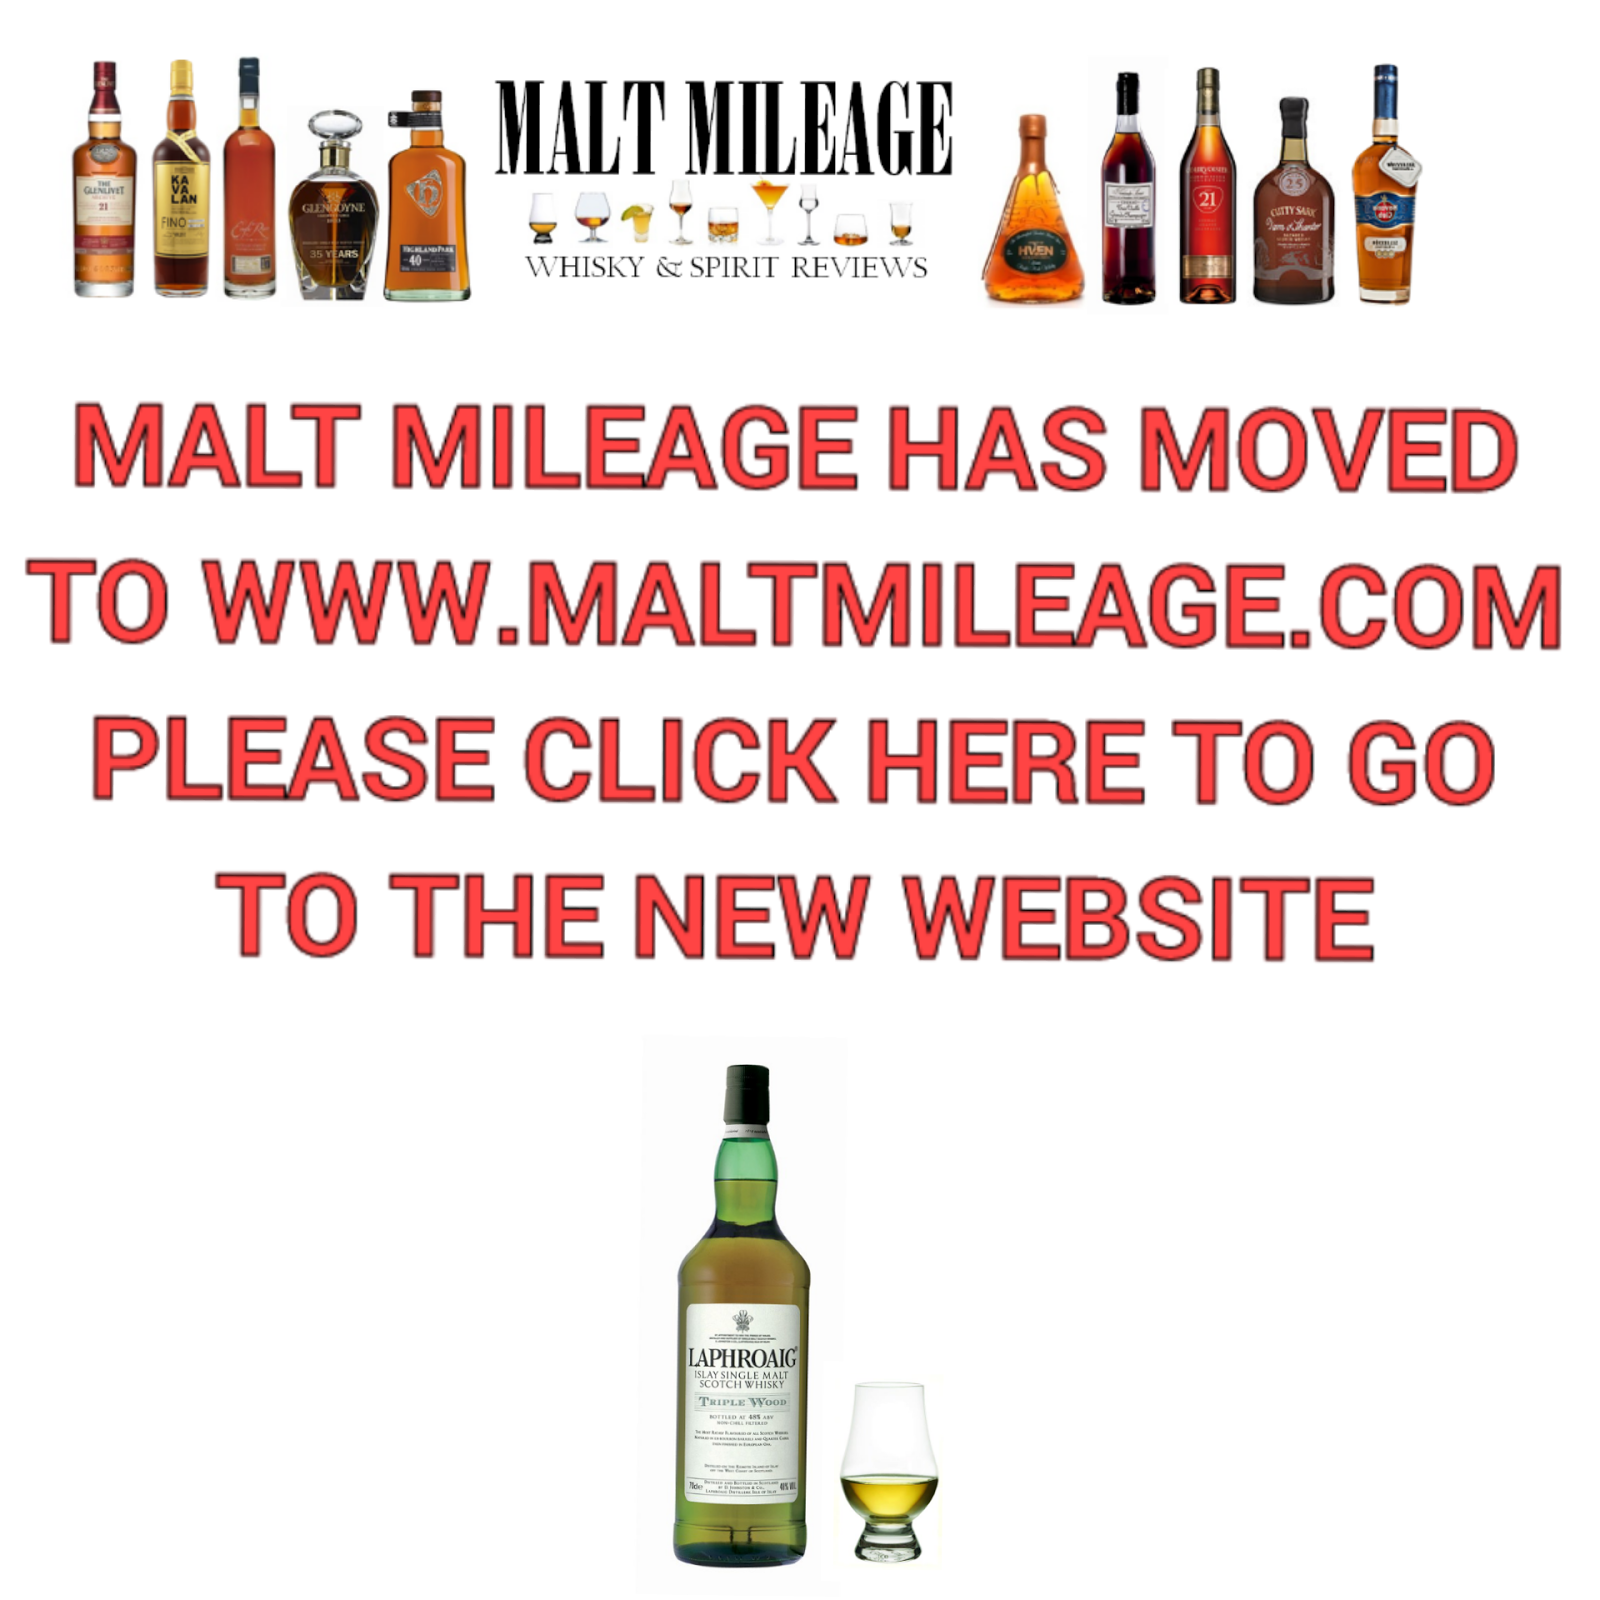 New Malt Mileage website